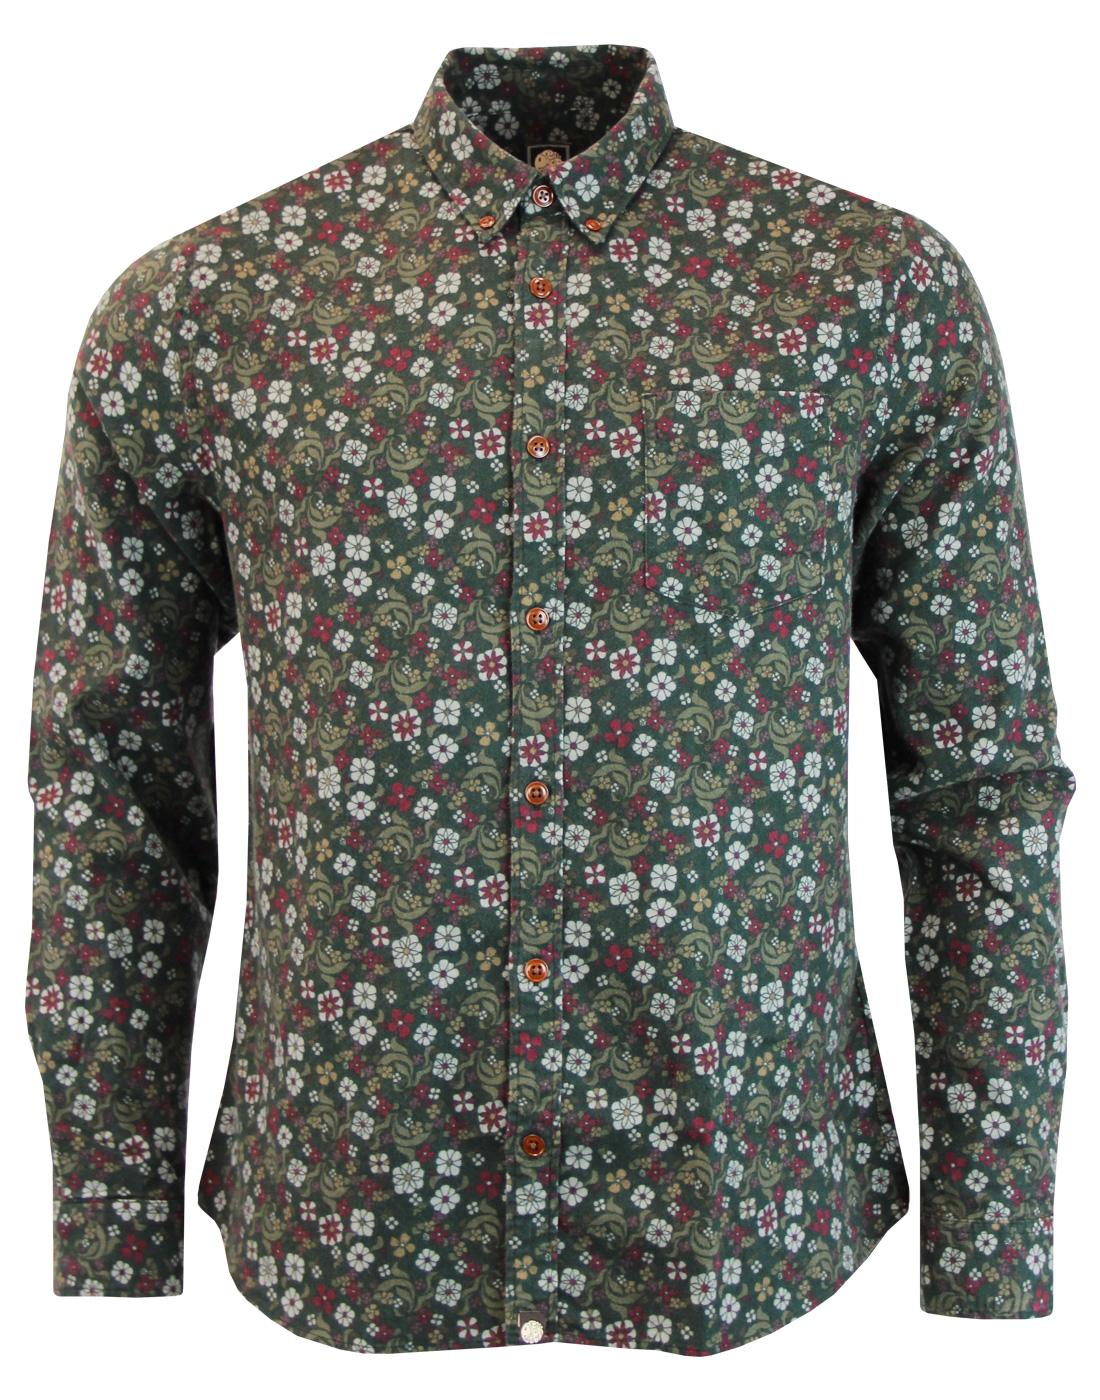 Balfour PRETTY GREEN Brushed Cotton Floral Shirt